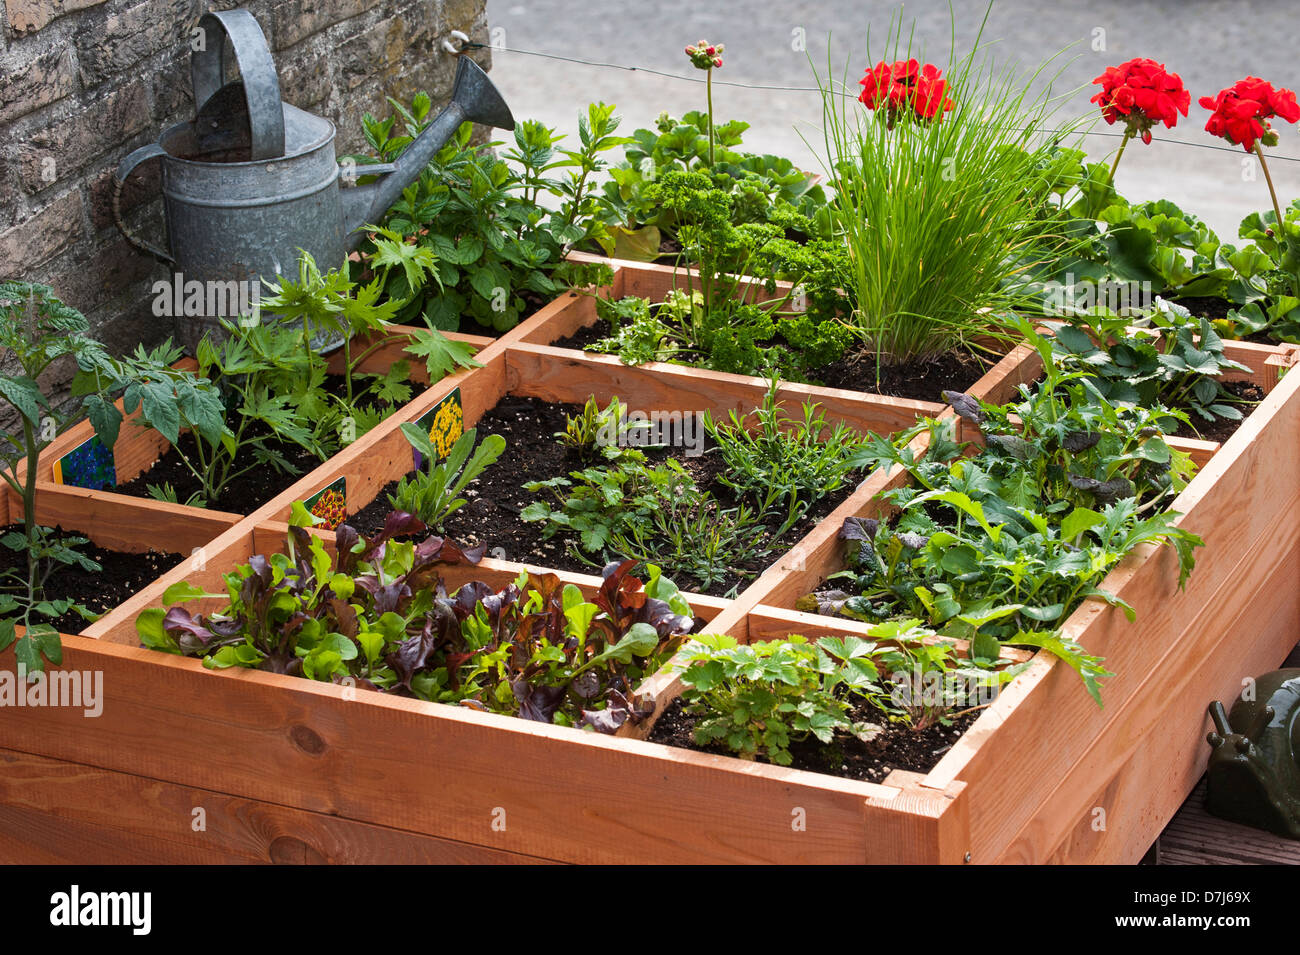 Square foot gardening by planting flowers, herbs and vegetables in wooden box on balcony Stock Photo